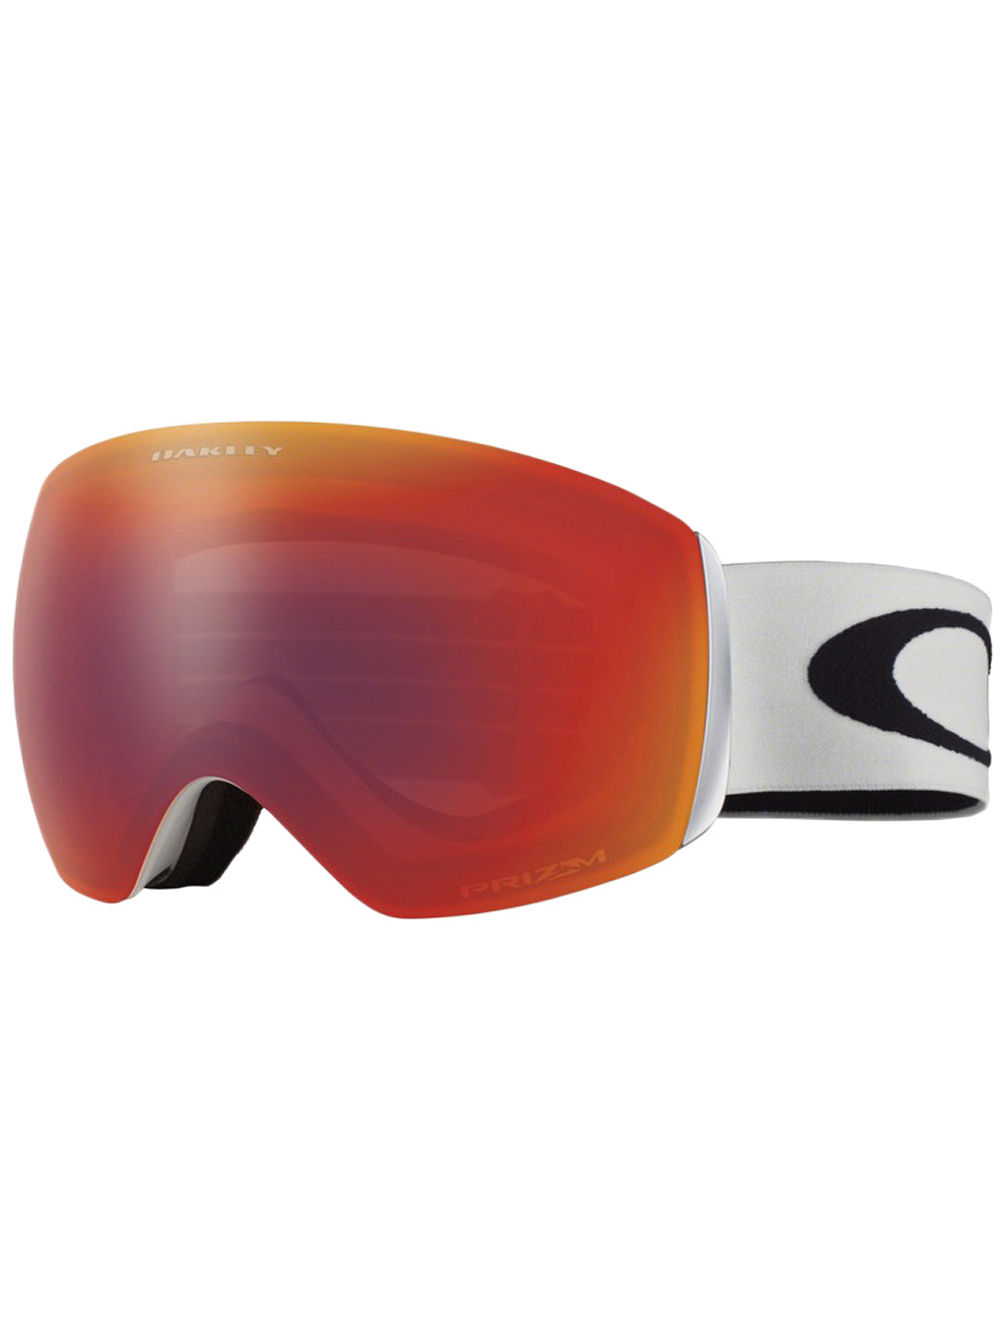 Flight Deck Xm matte white Goggle